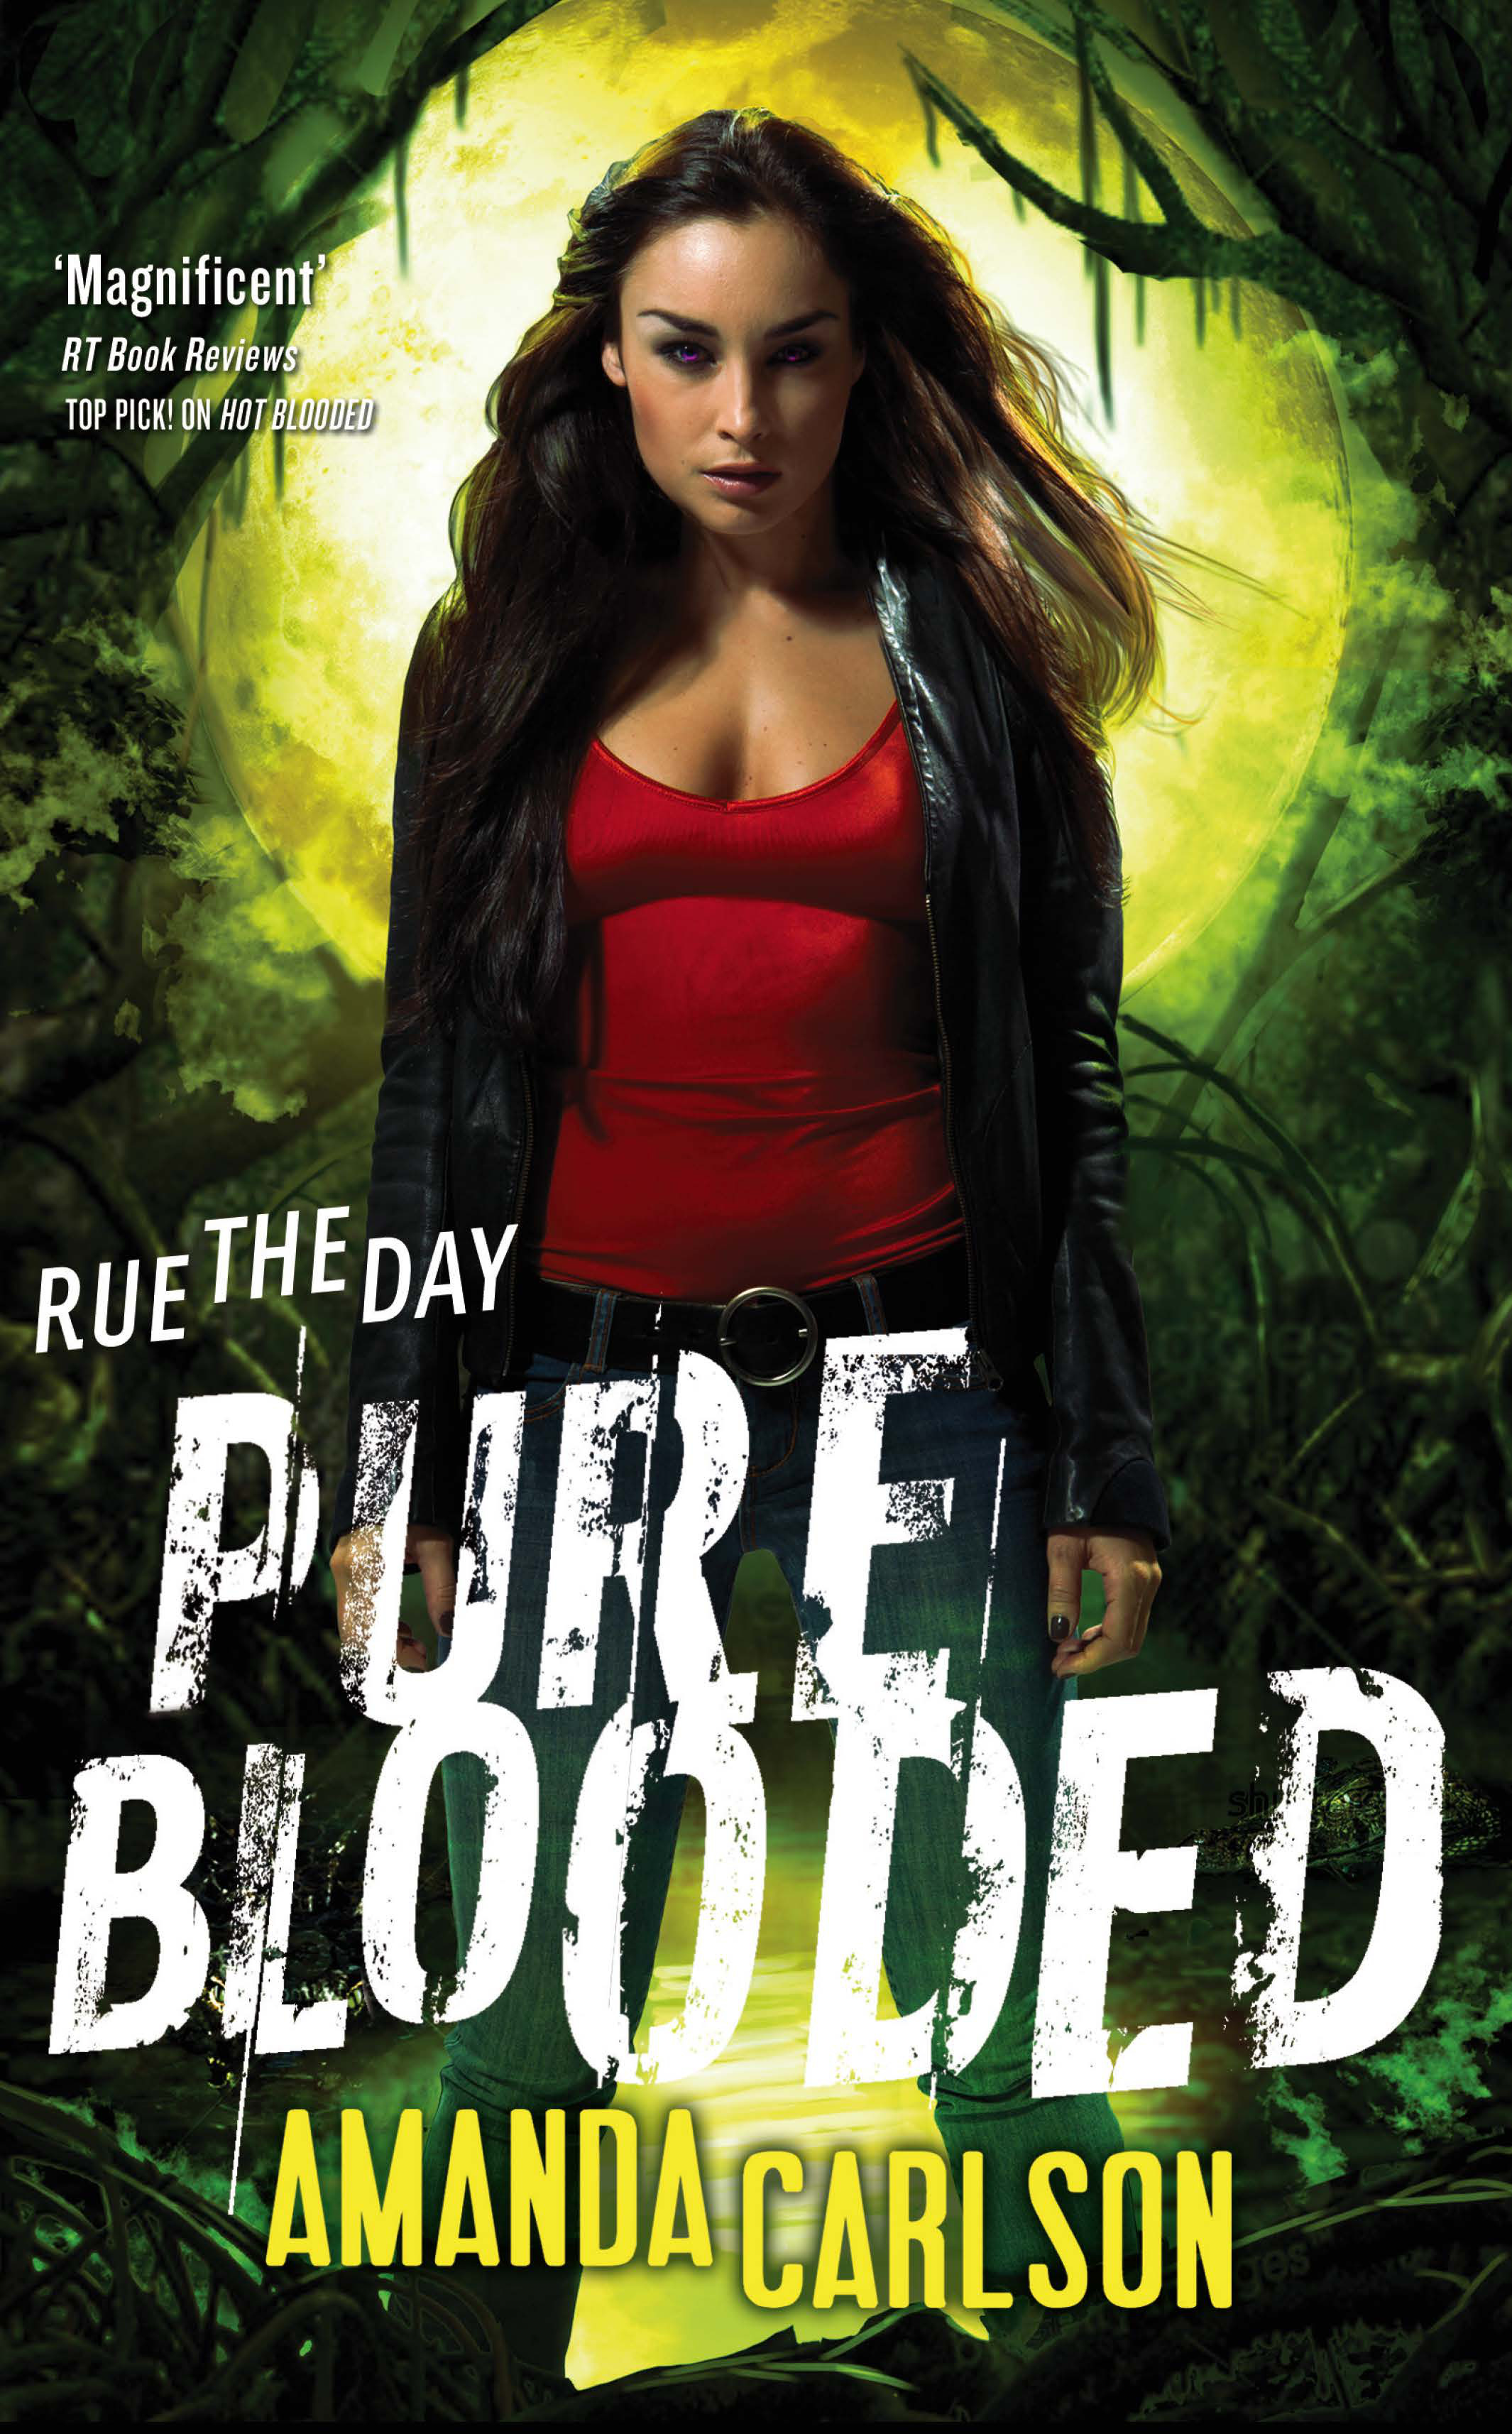 Pure blooded book 5 in the jessica mcclain series by amanda carlson imprint fandeluxe Gallery